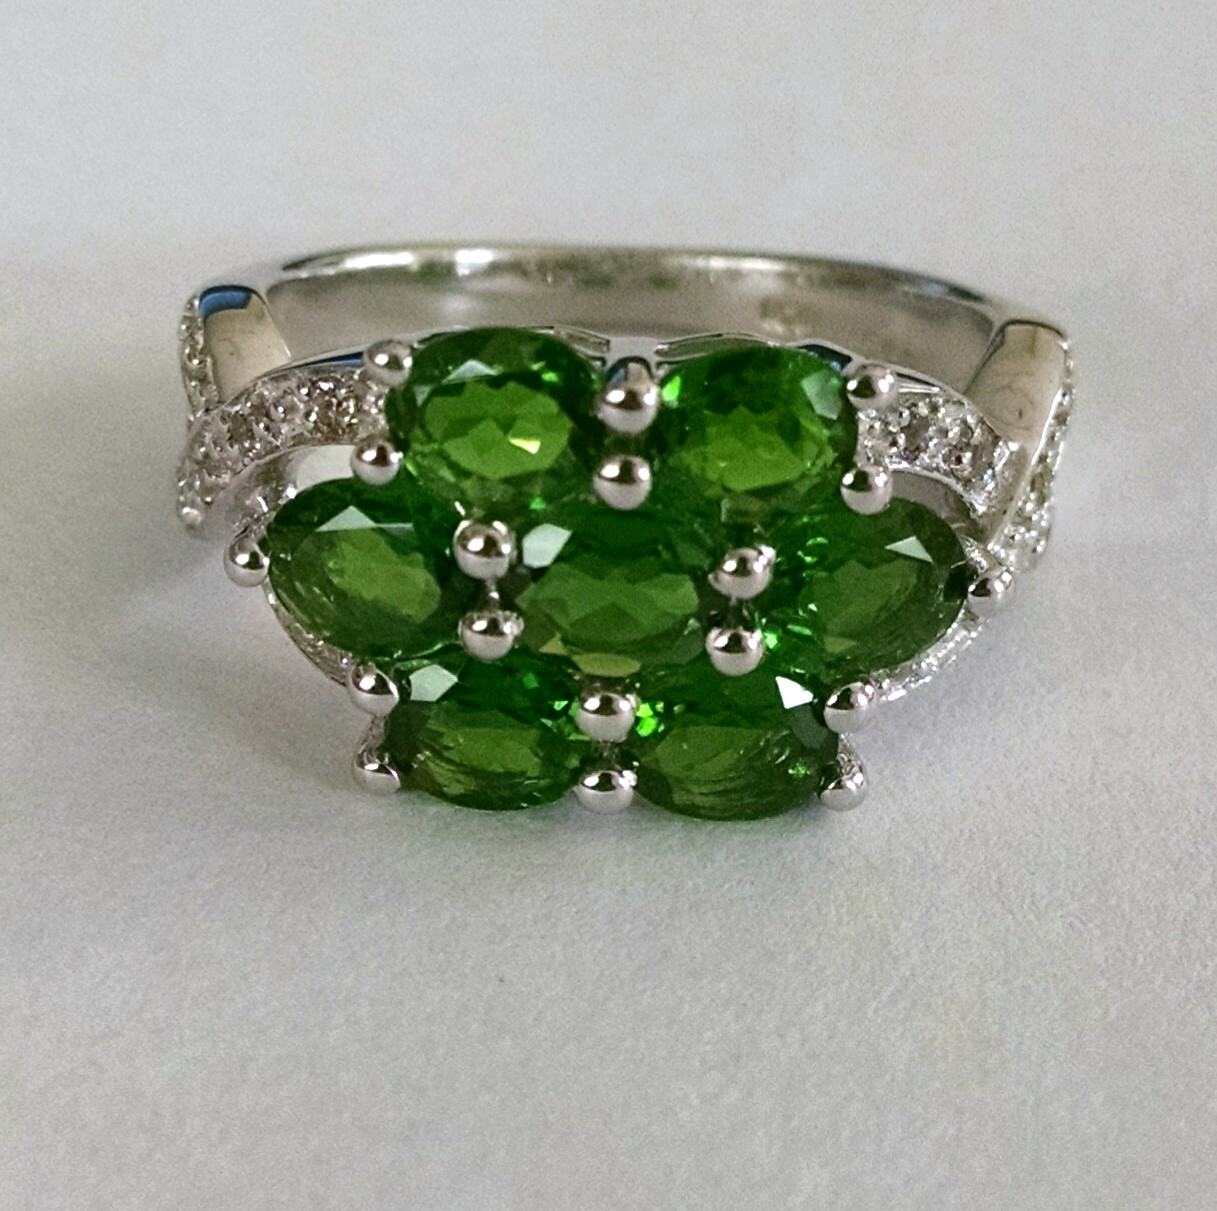 Cluster ring in chrome diopside